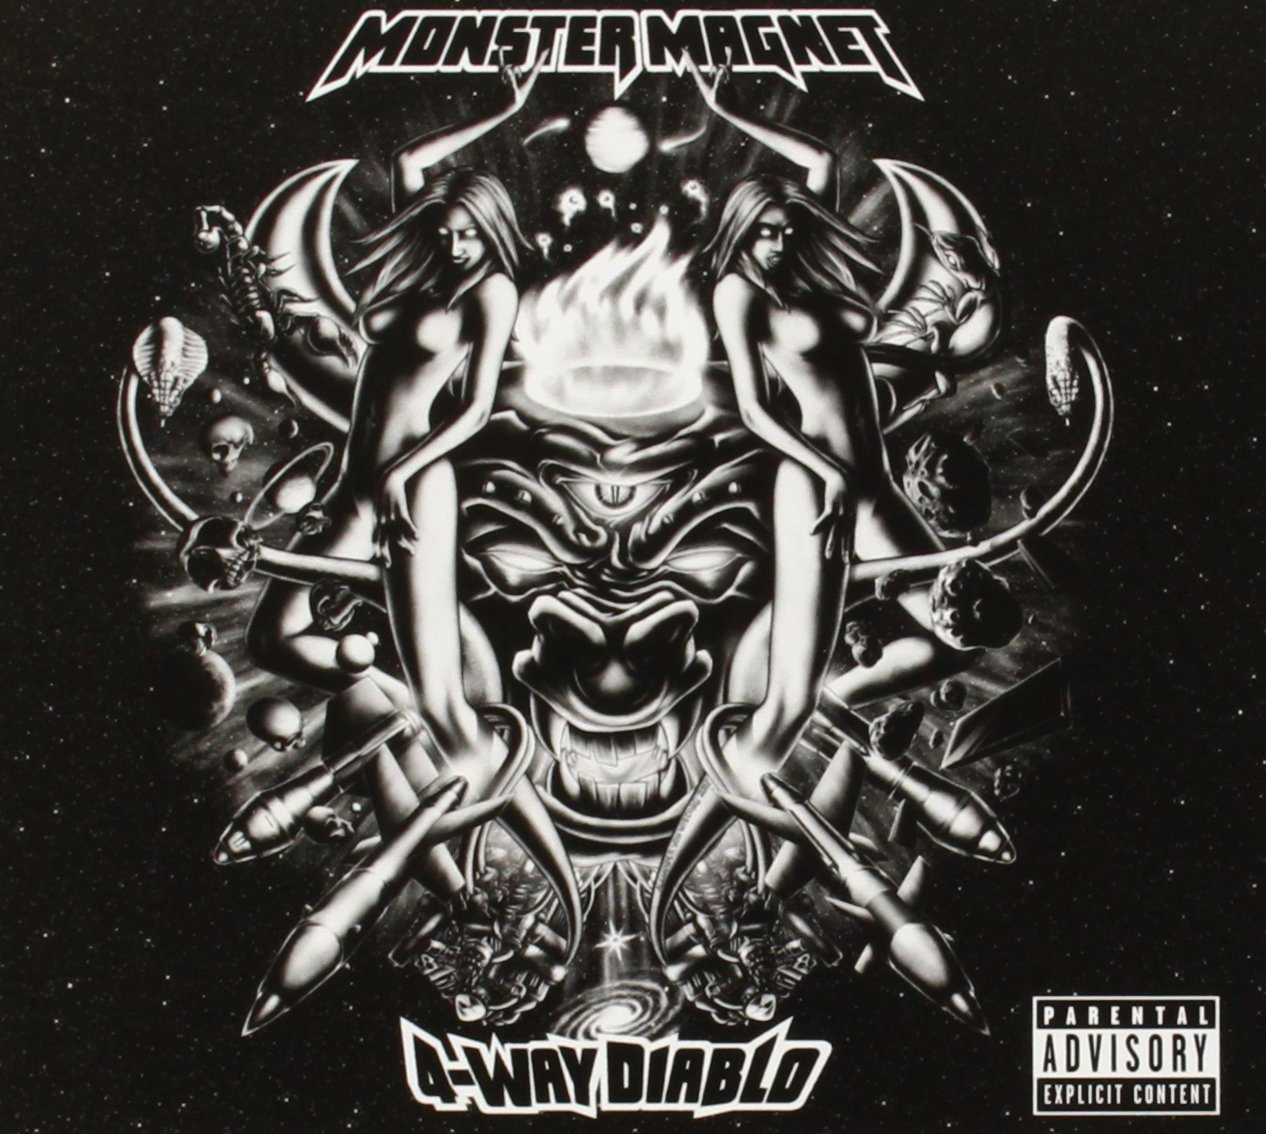 4-Way Diablo [Audio CD] MONSTER MAGNET